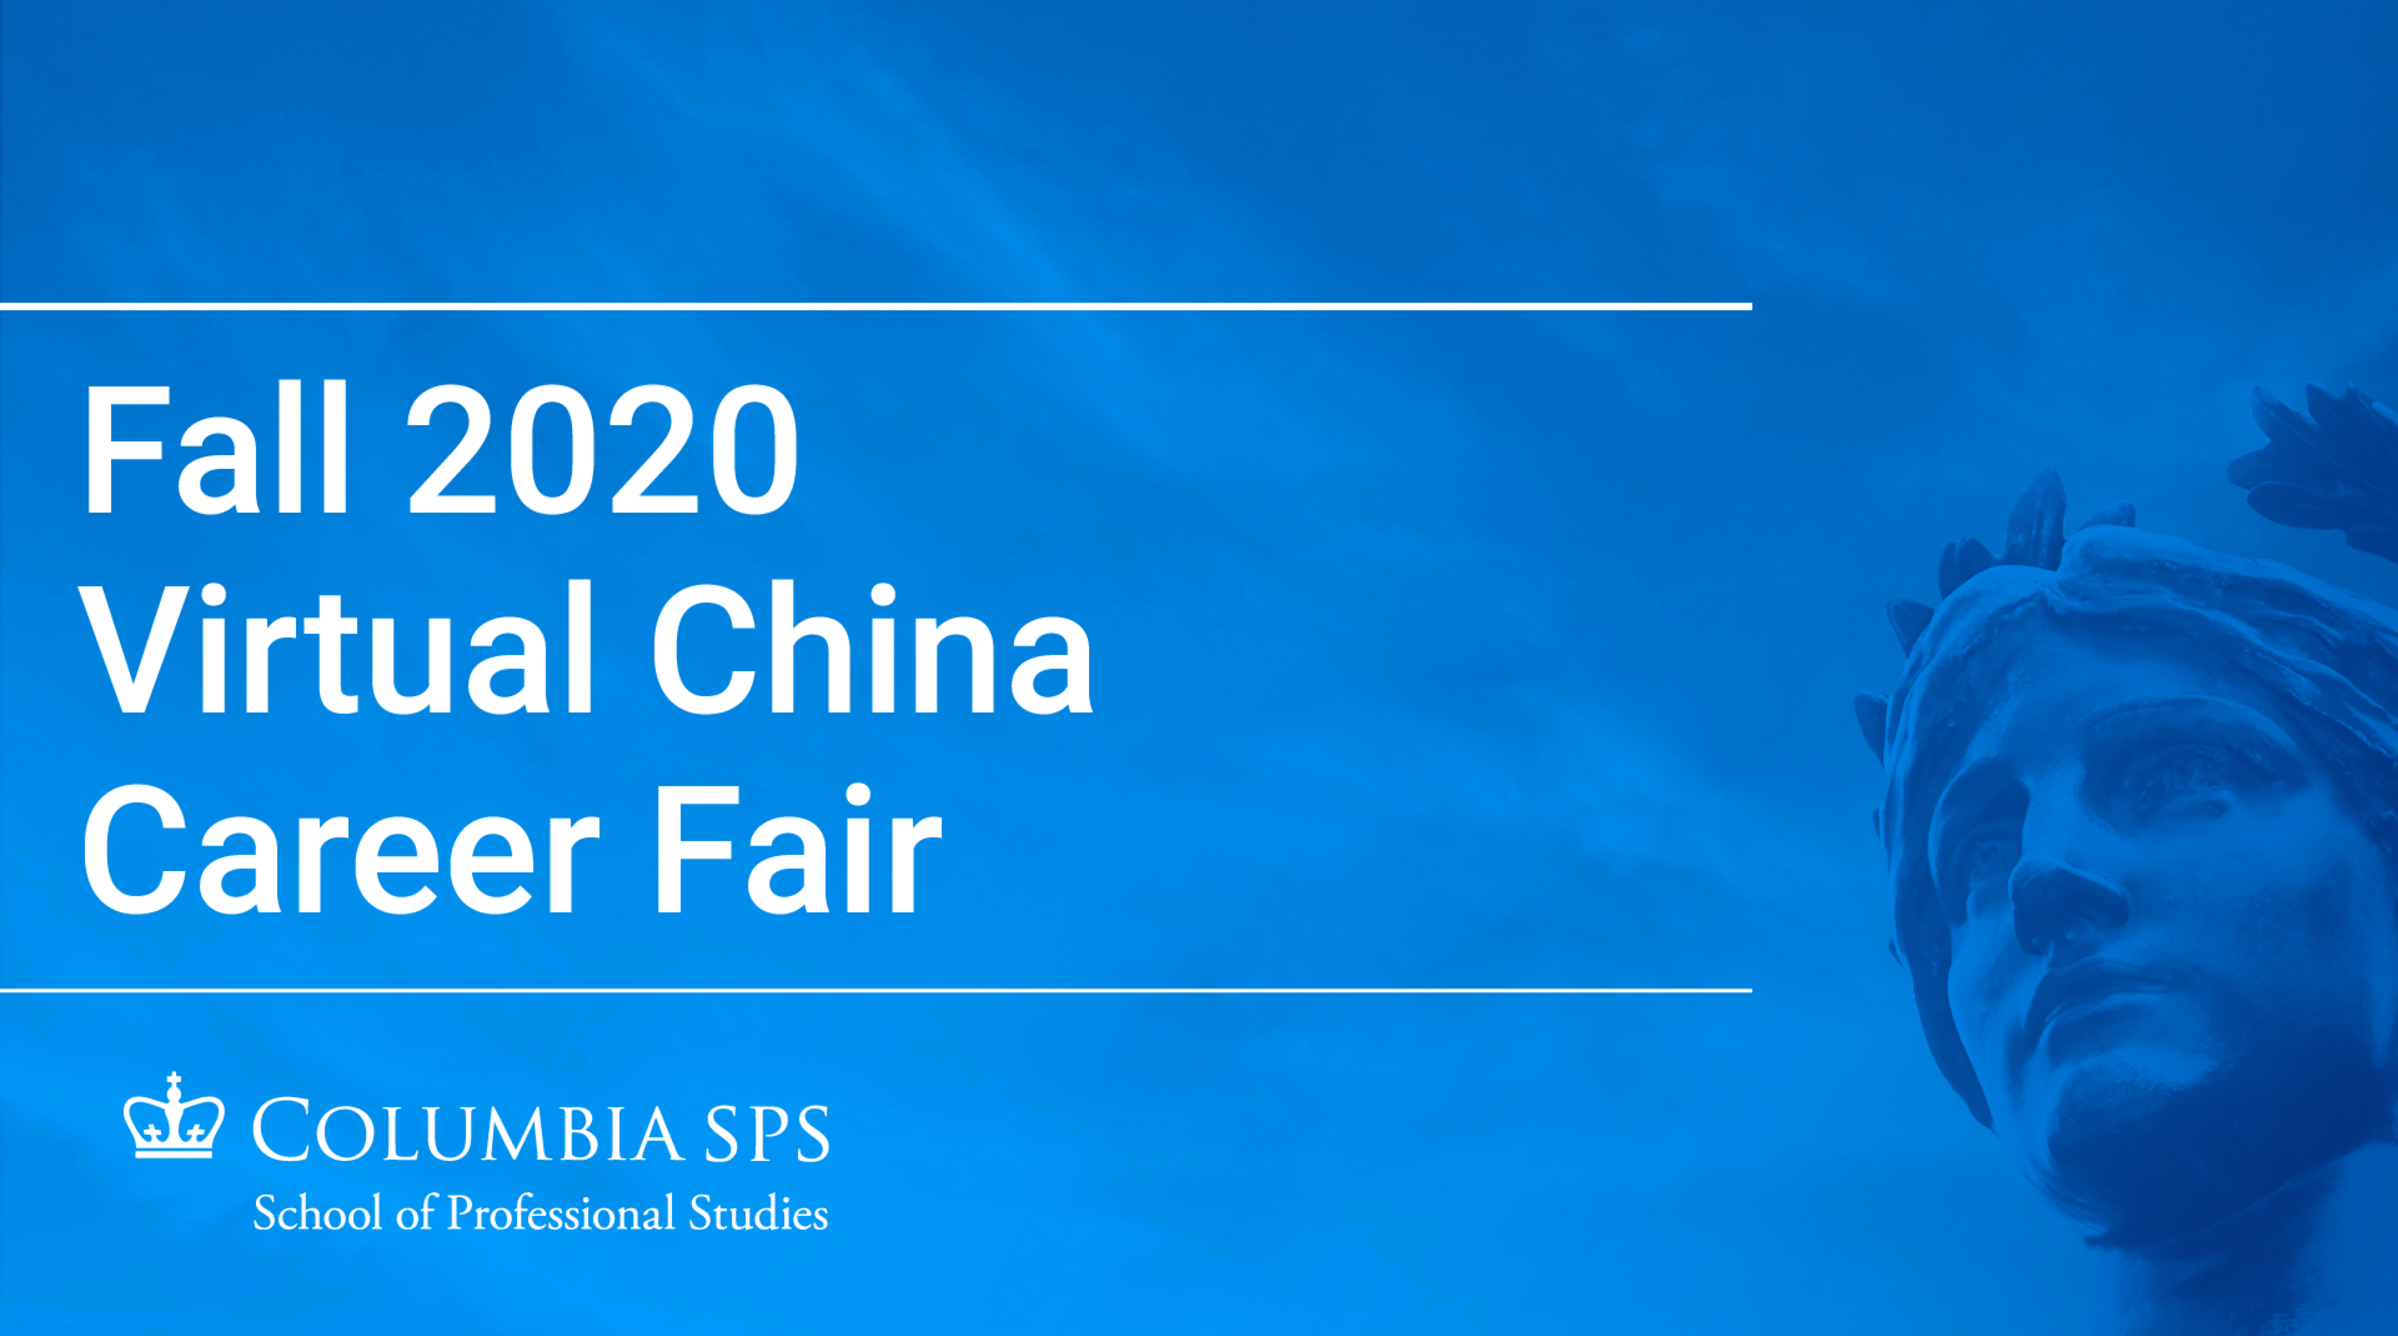 Fall 2020 Virtual China Career Fair